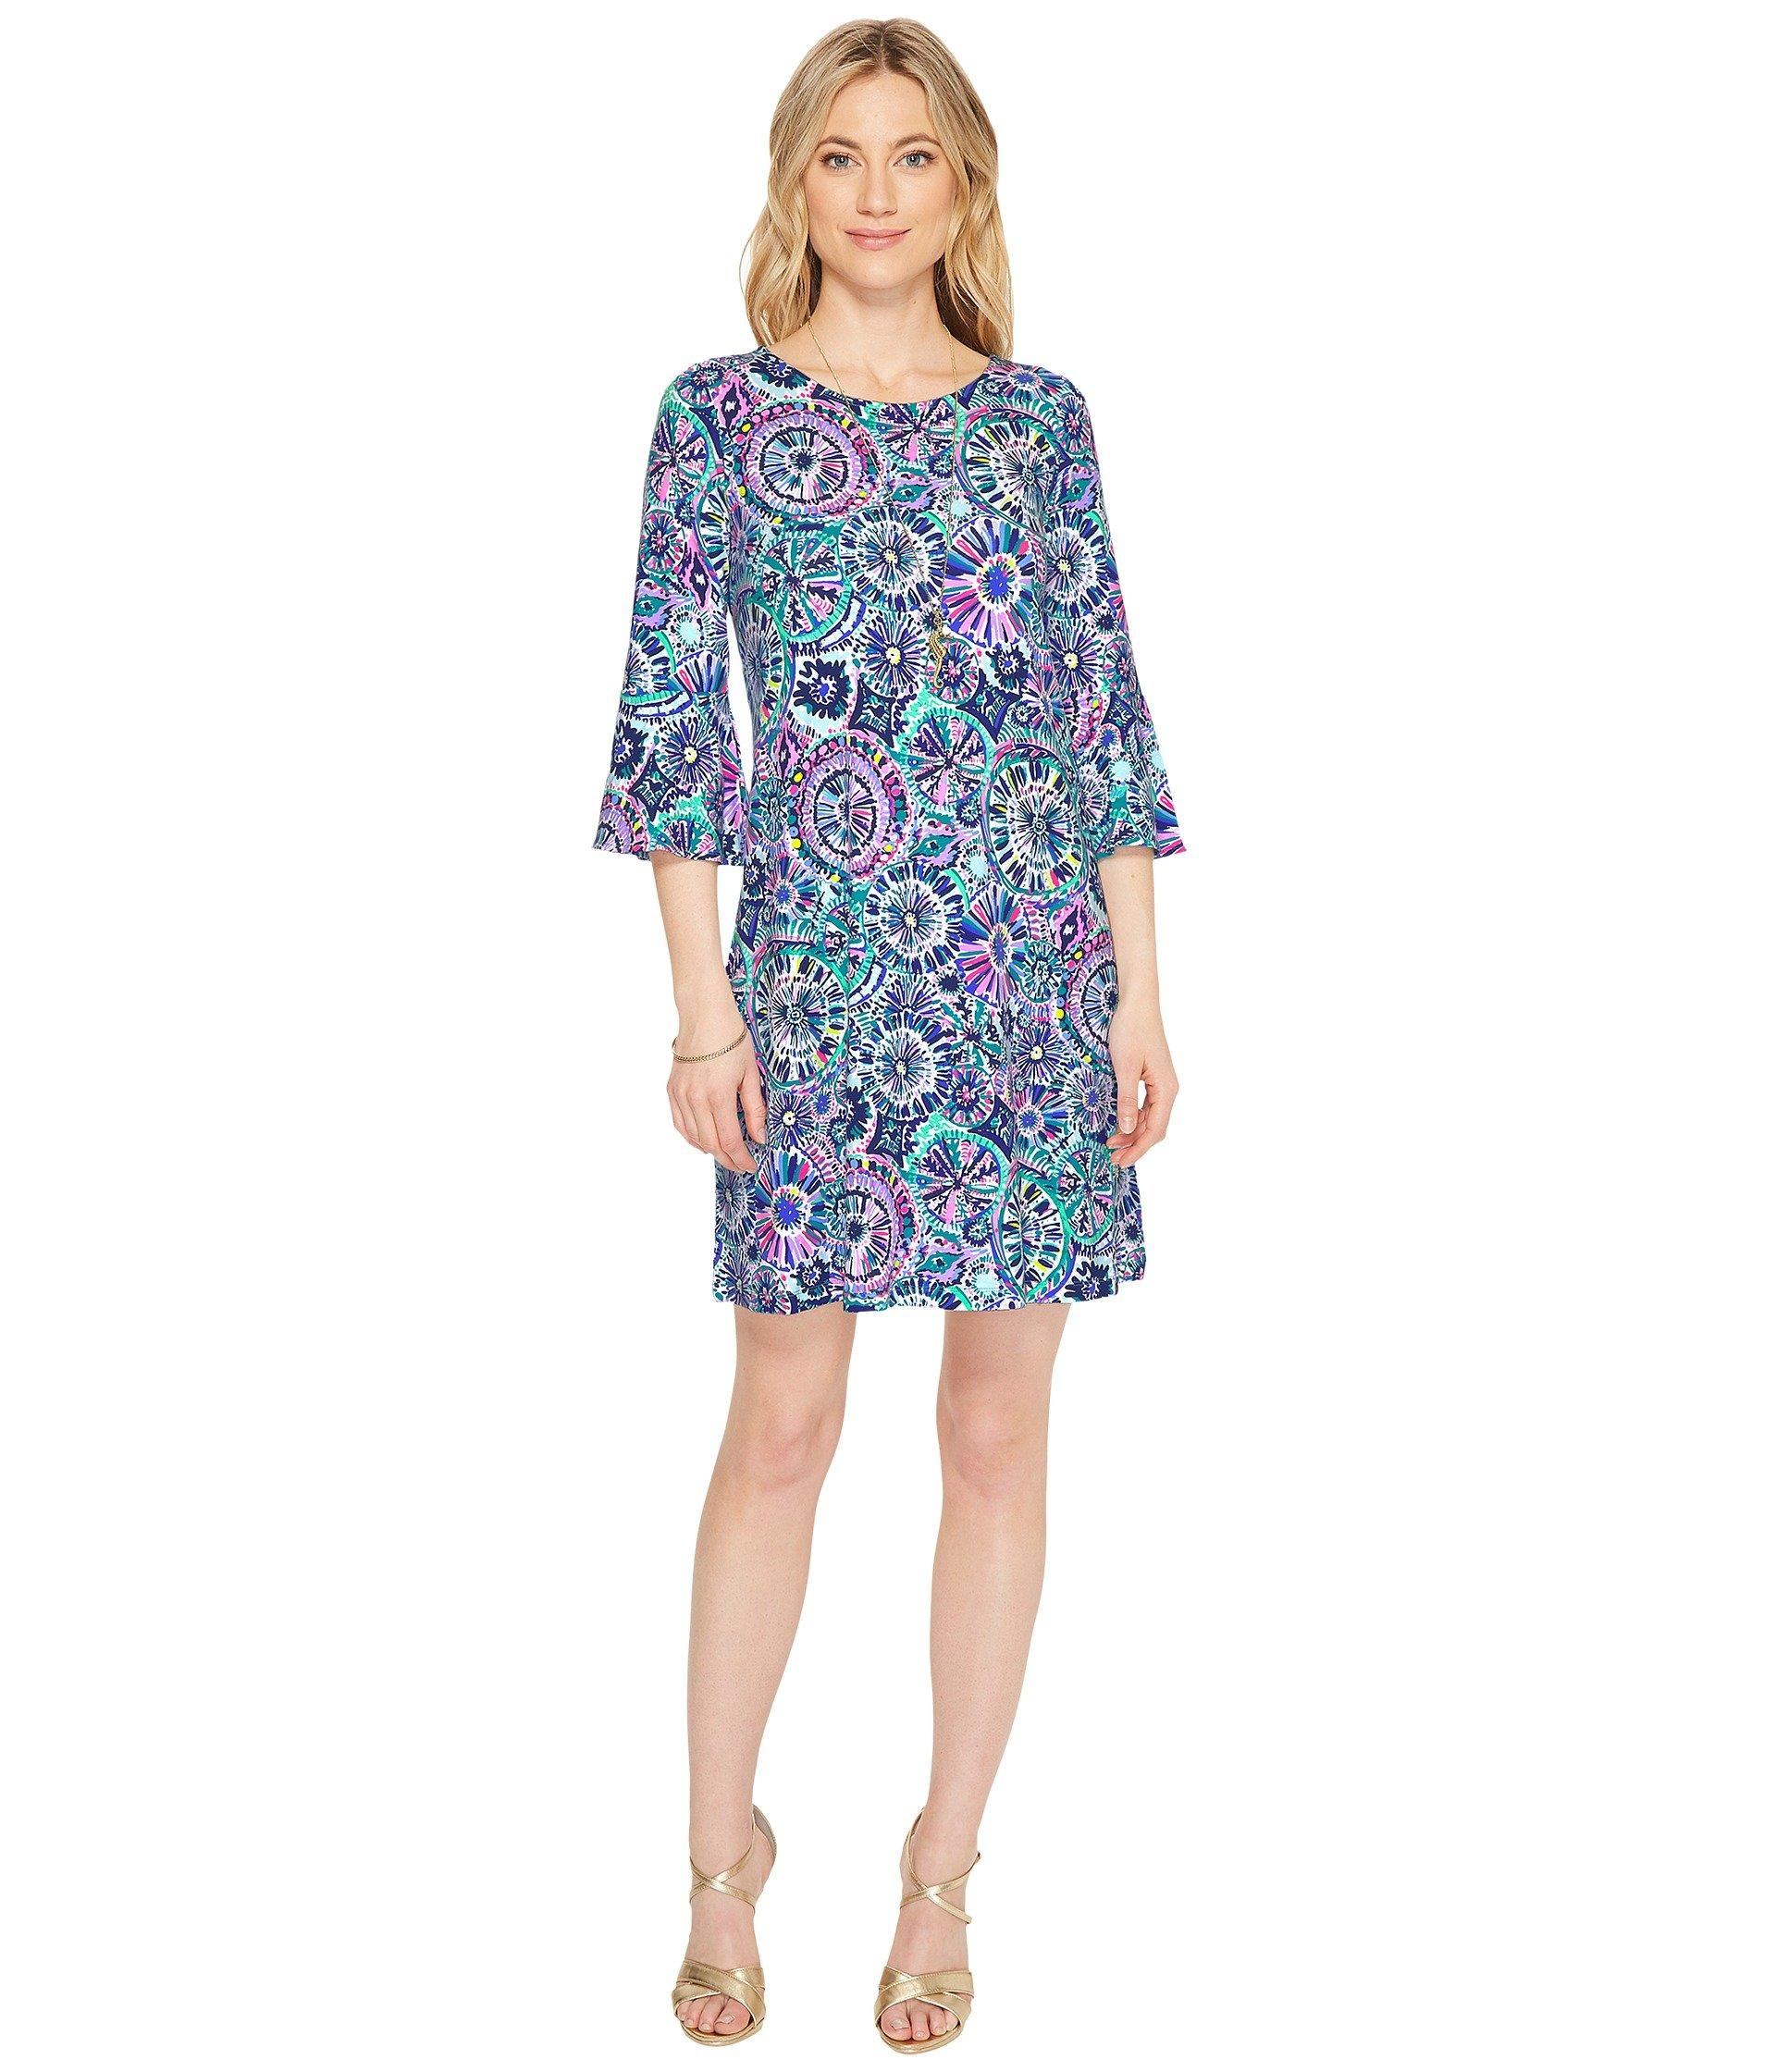 ea19ccfc4c7258 Lilly Pulitzer Ophelia Dress in Blue - Lyst